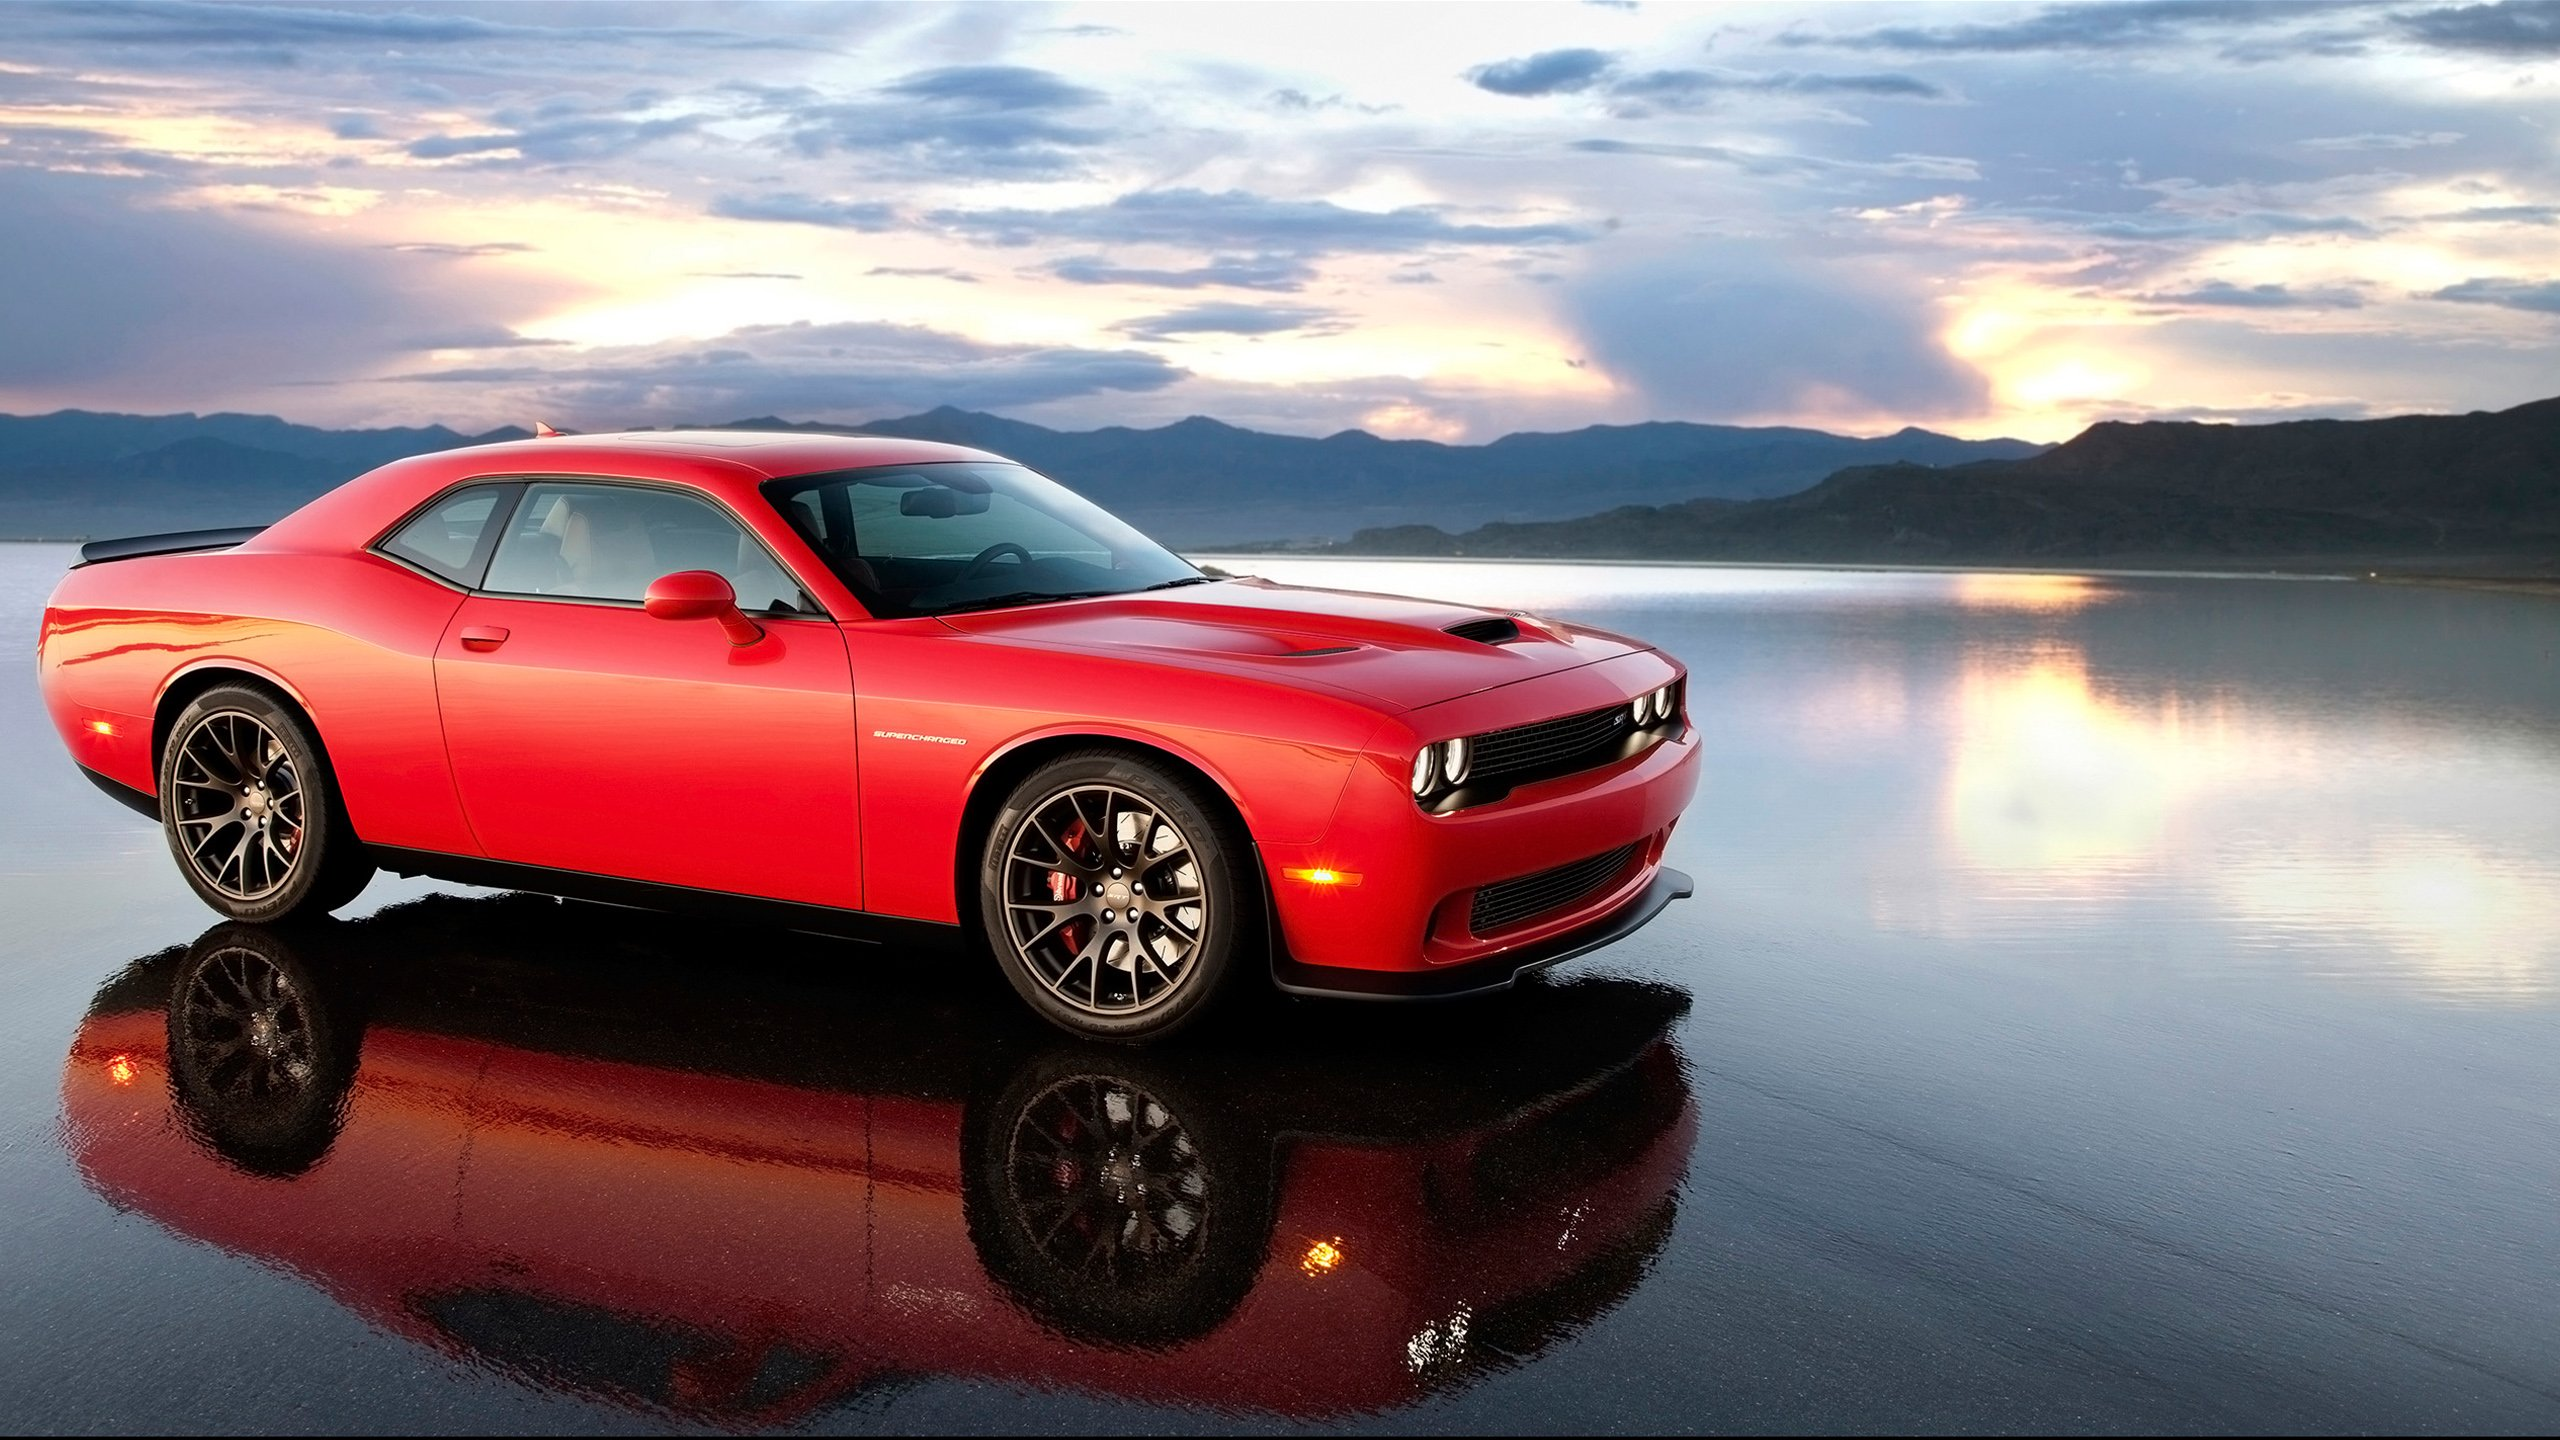 2015 Dodge Challenger SRT Wallpaper HD Car Wallpapers 2560x1440